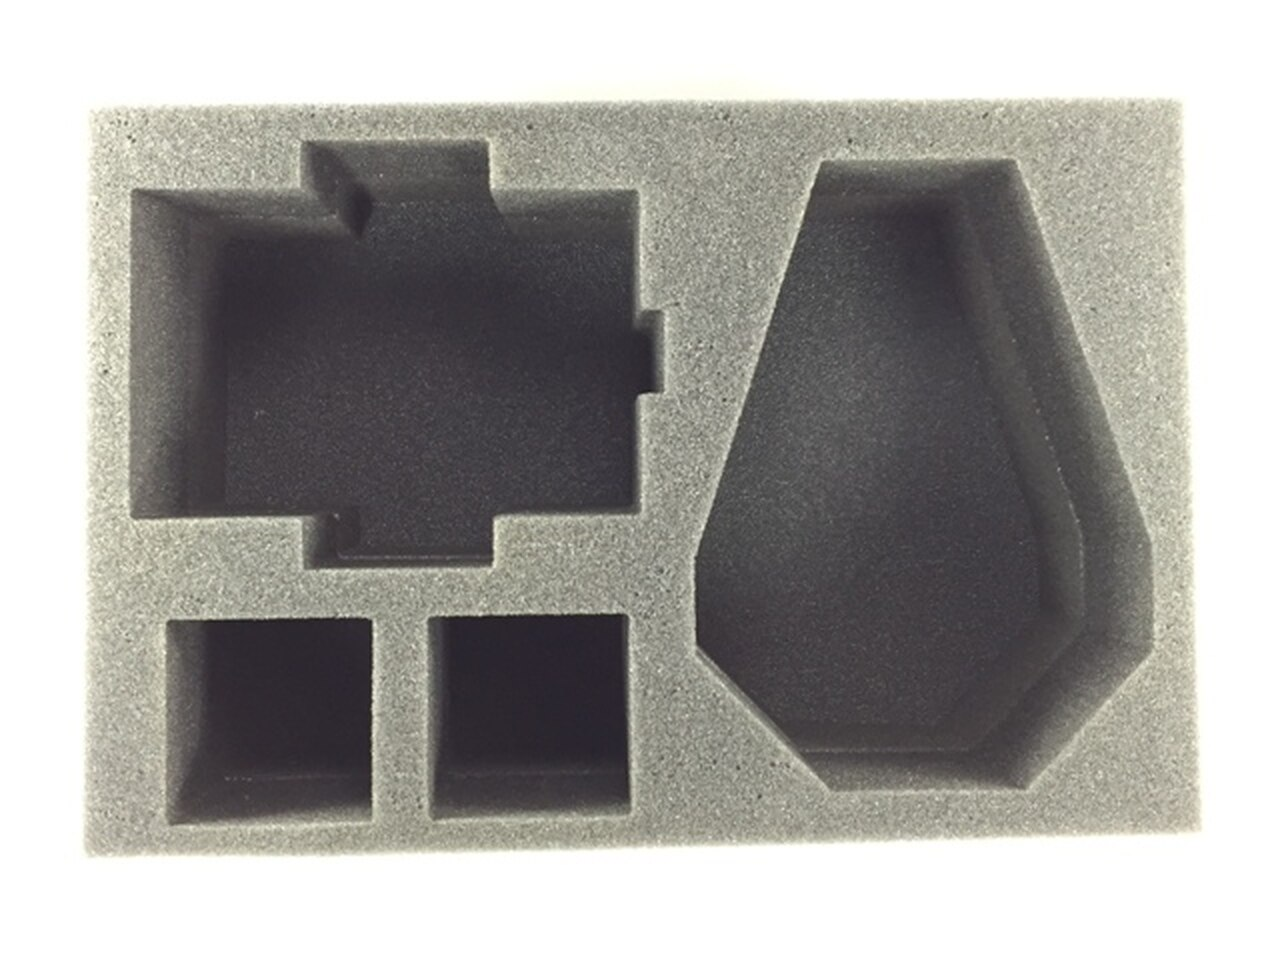 Battlefoam: WH40K: Space Marine: 1 Drop Pod 1 Predator Foam Tray (BFS-4.5)